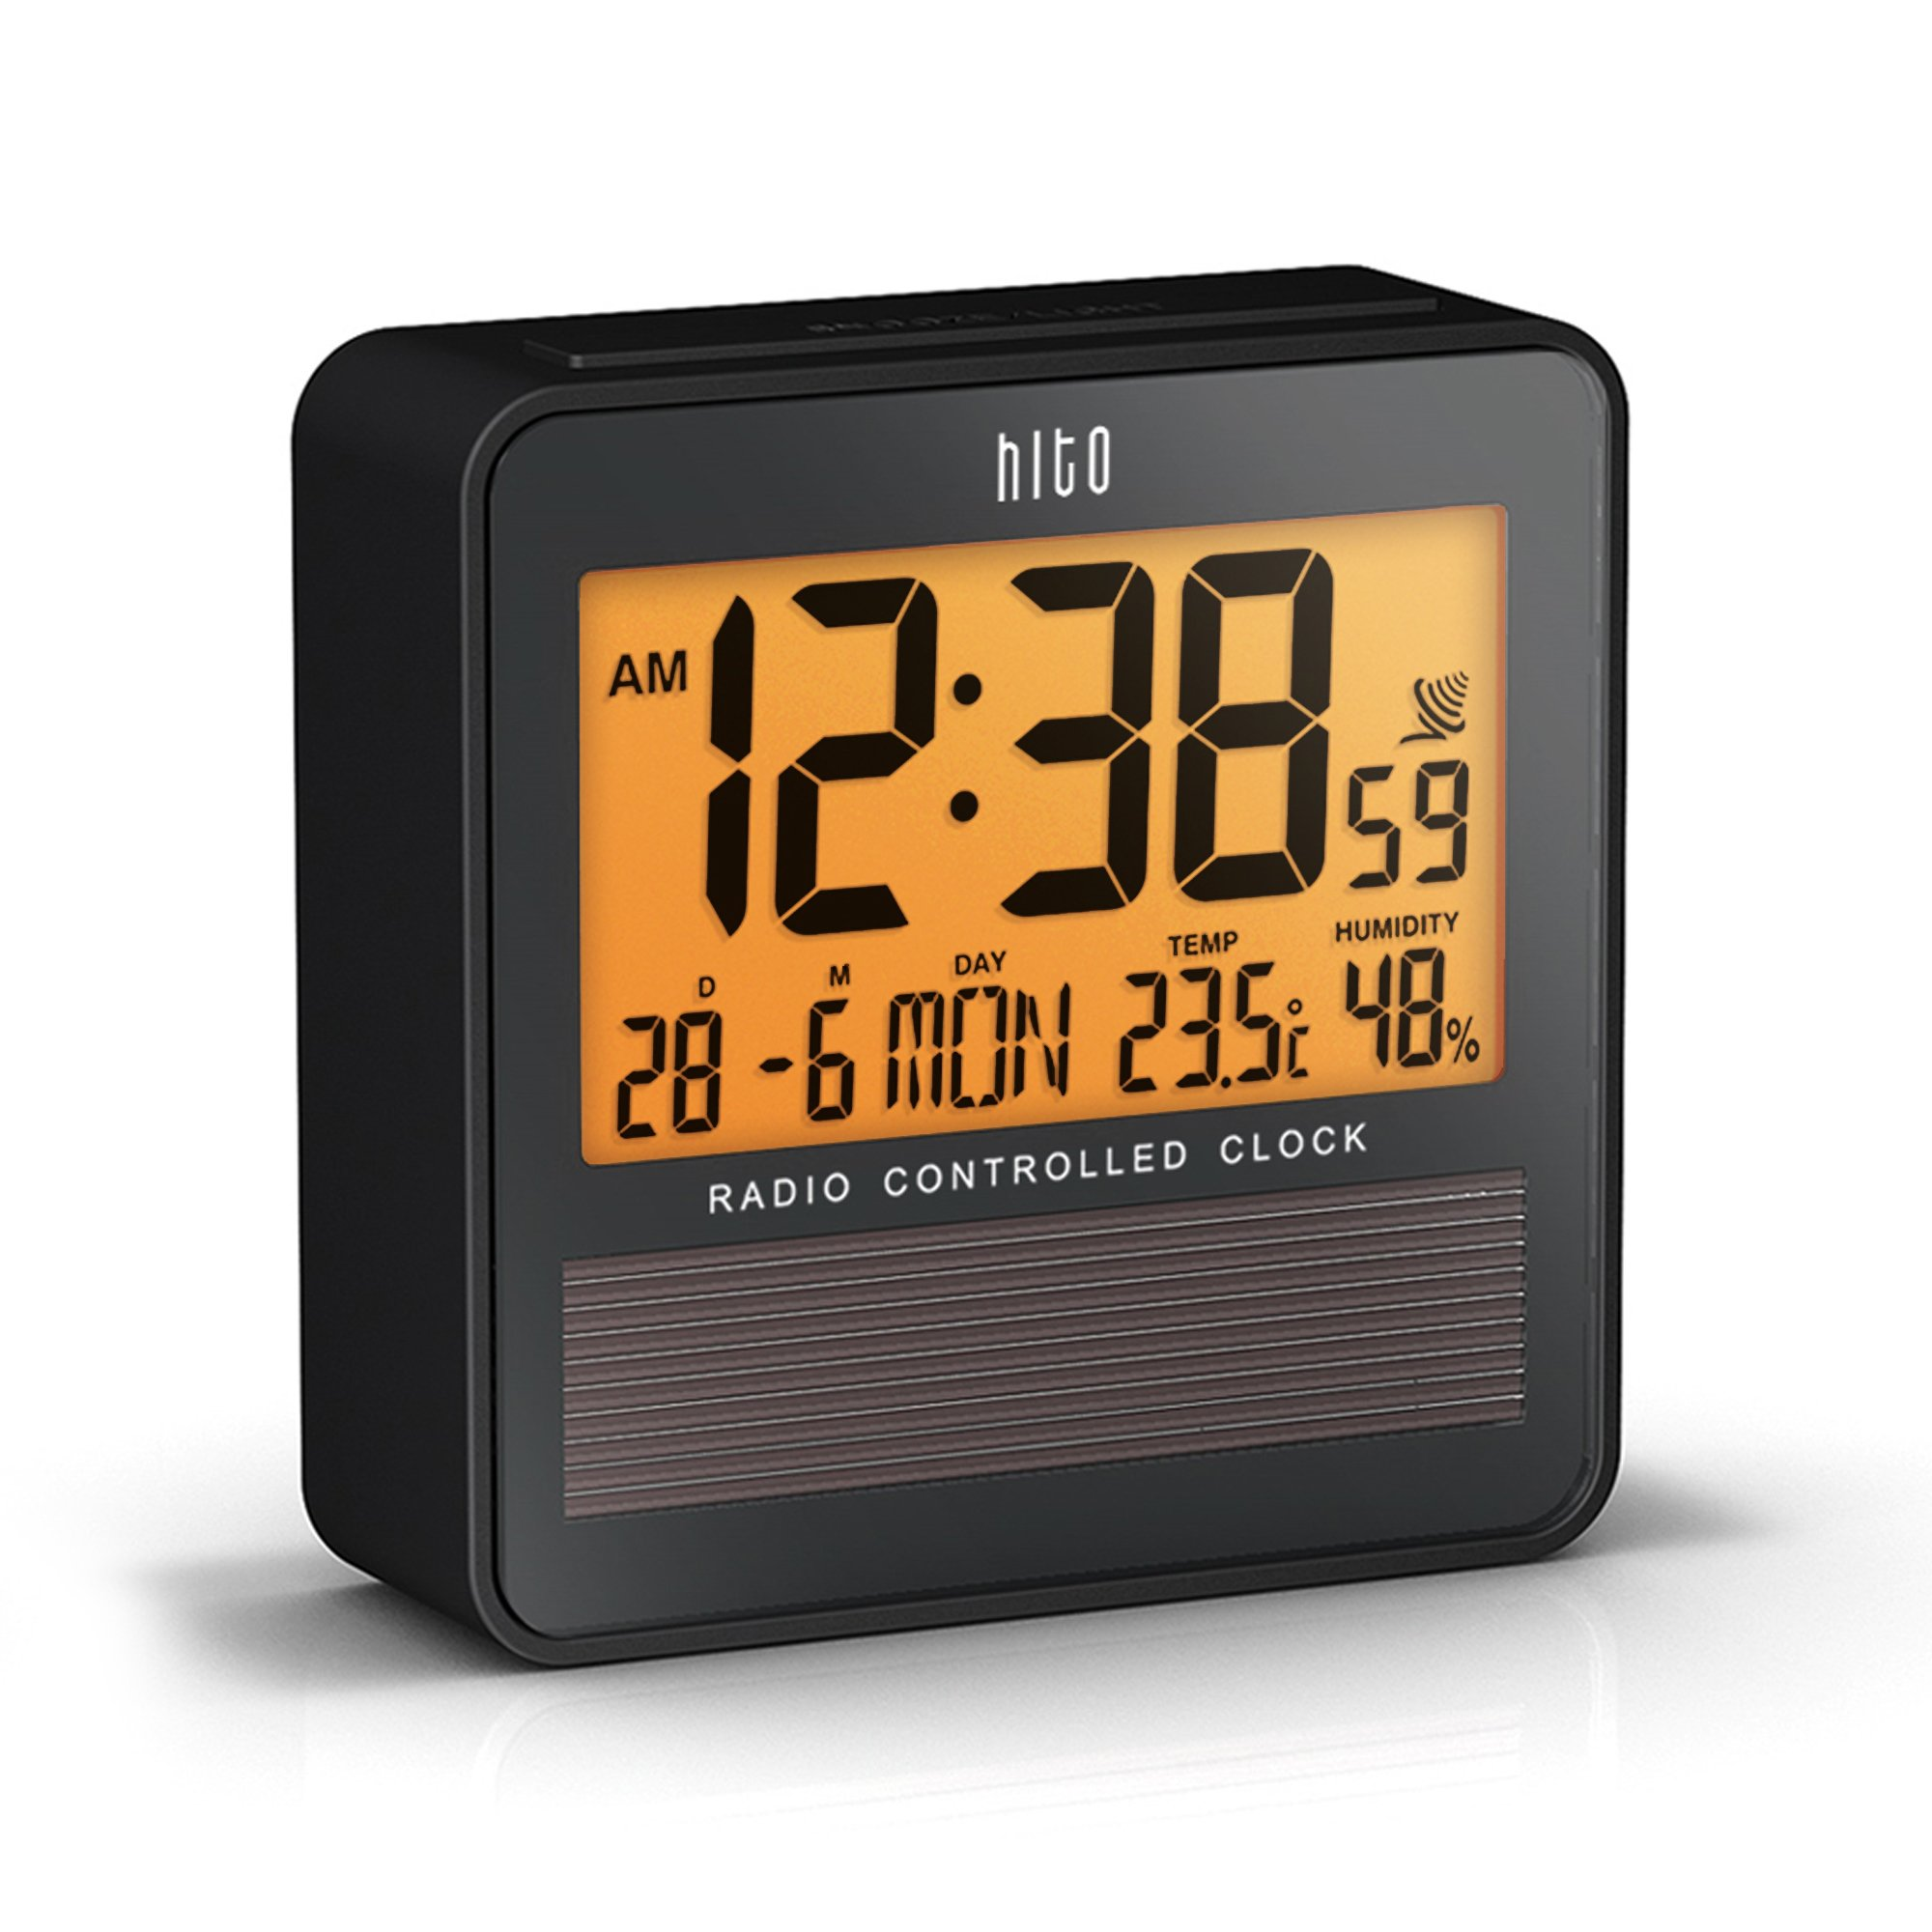 hito atomic radio controlled travel alarm clock w date temperature humidity ebay. Black Bedroom Furniture Sets. Home Design Ideas